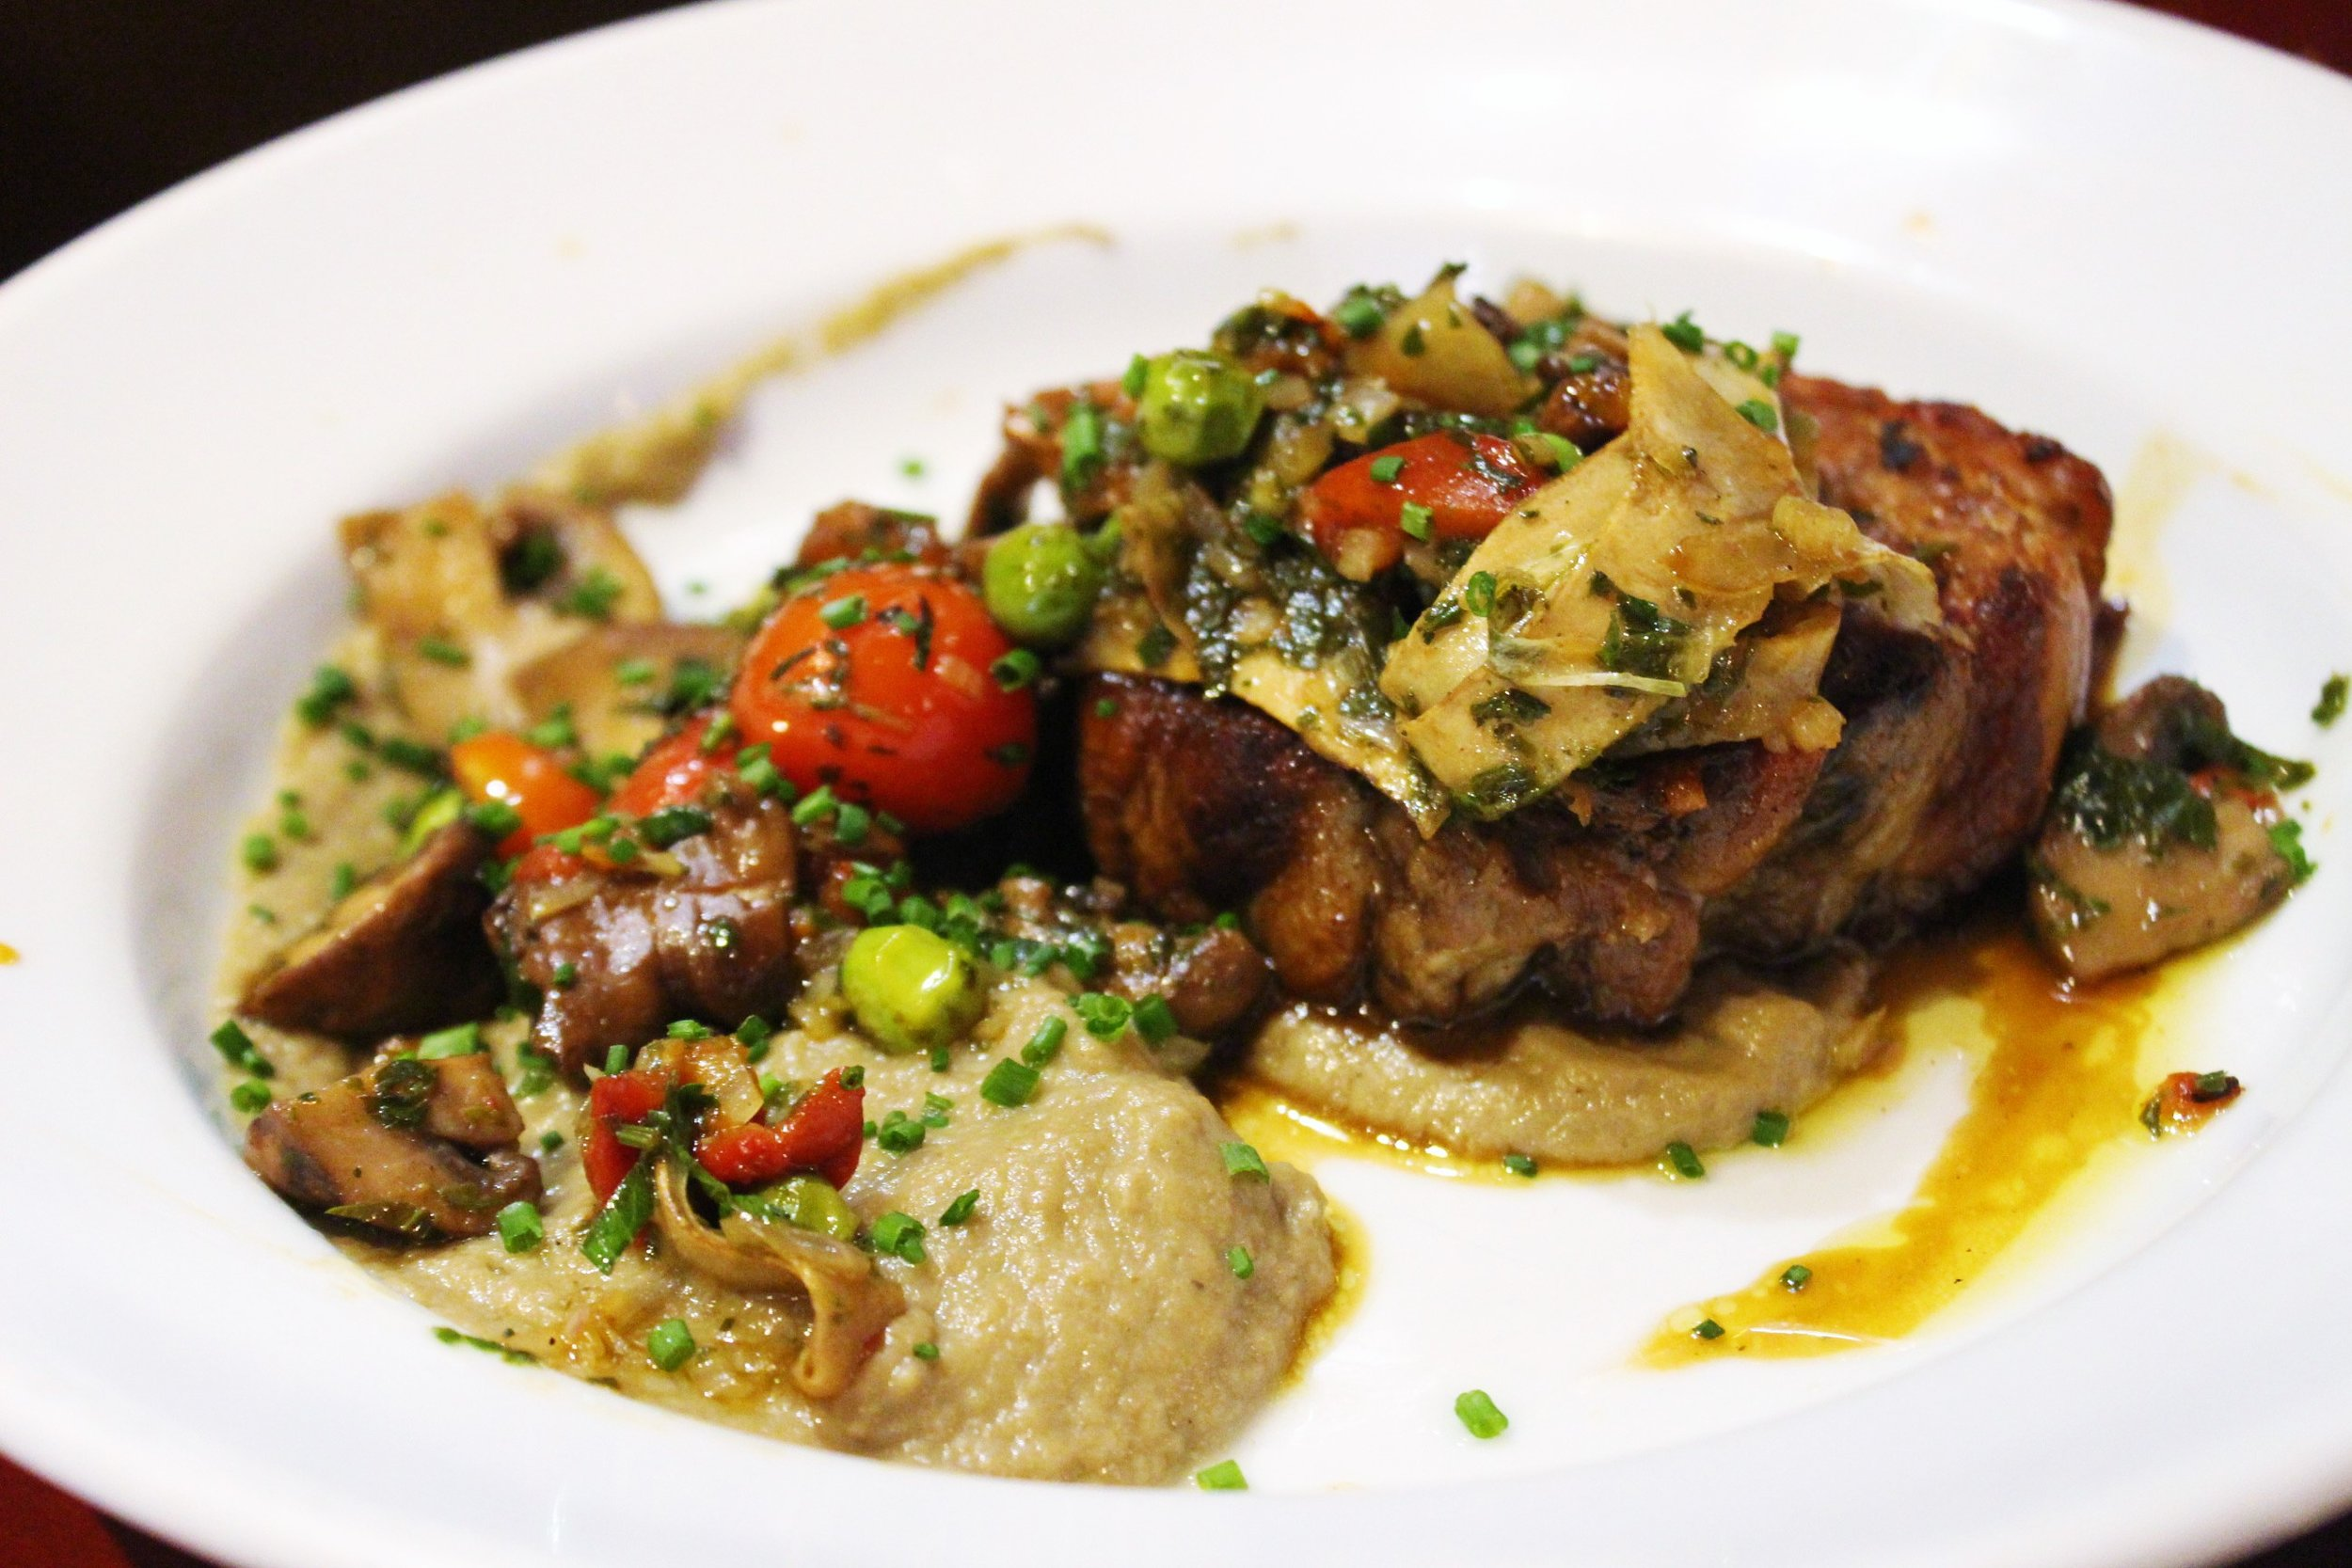 Veal Breast Confit, Eggplant Caviar, Fried Artichokes and Mushrooms at Juveniles in Paris